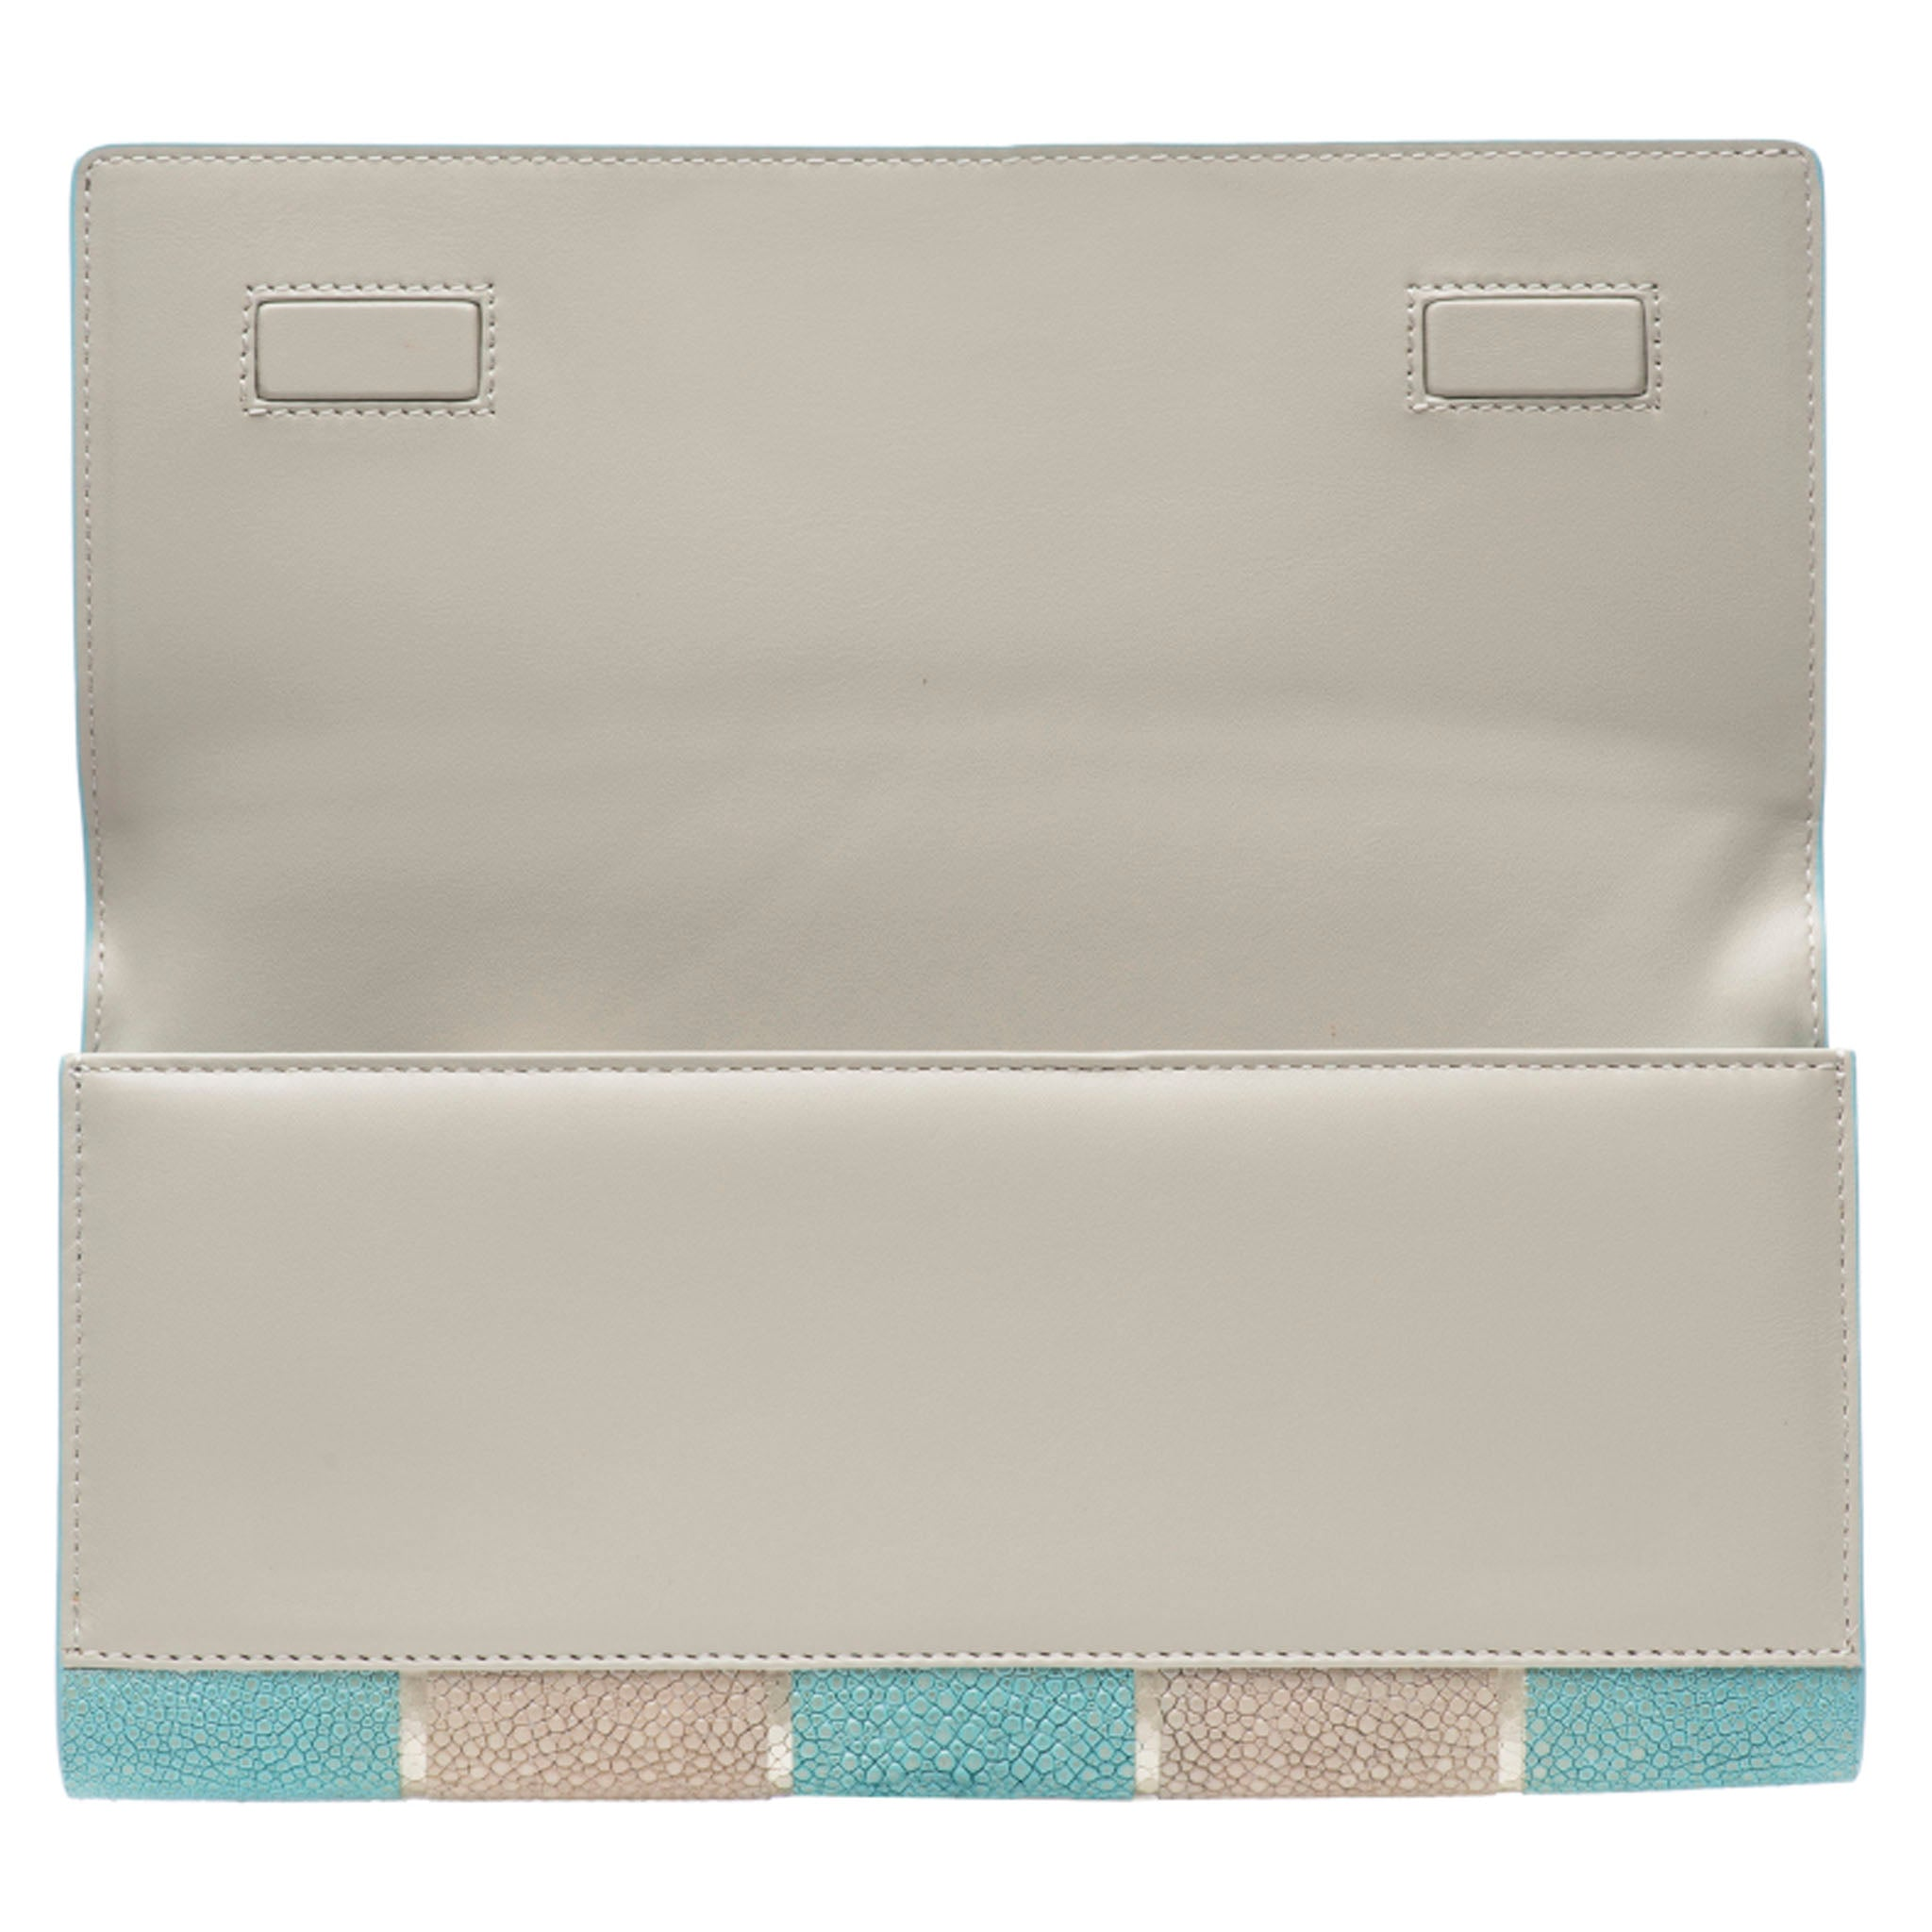 Sky And Cement  Stripe Shagreen Clutch Bag Inside View Cleo - Vivo Direct